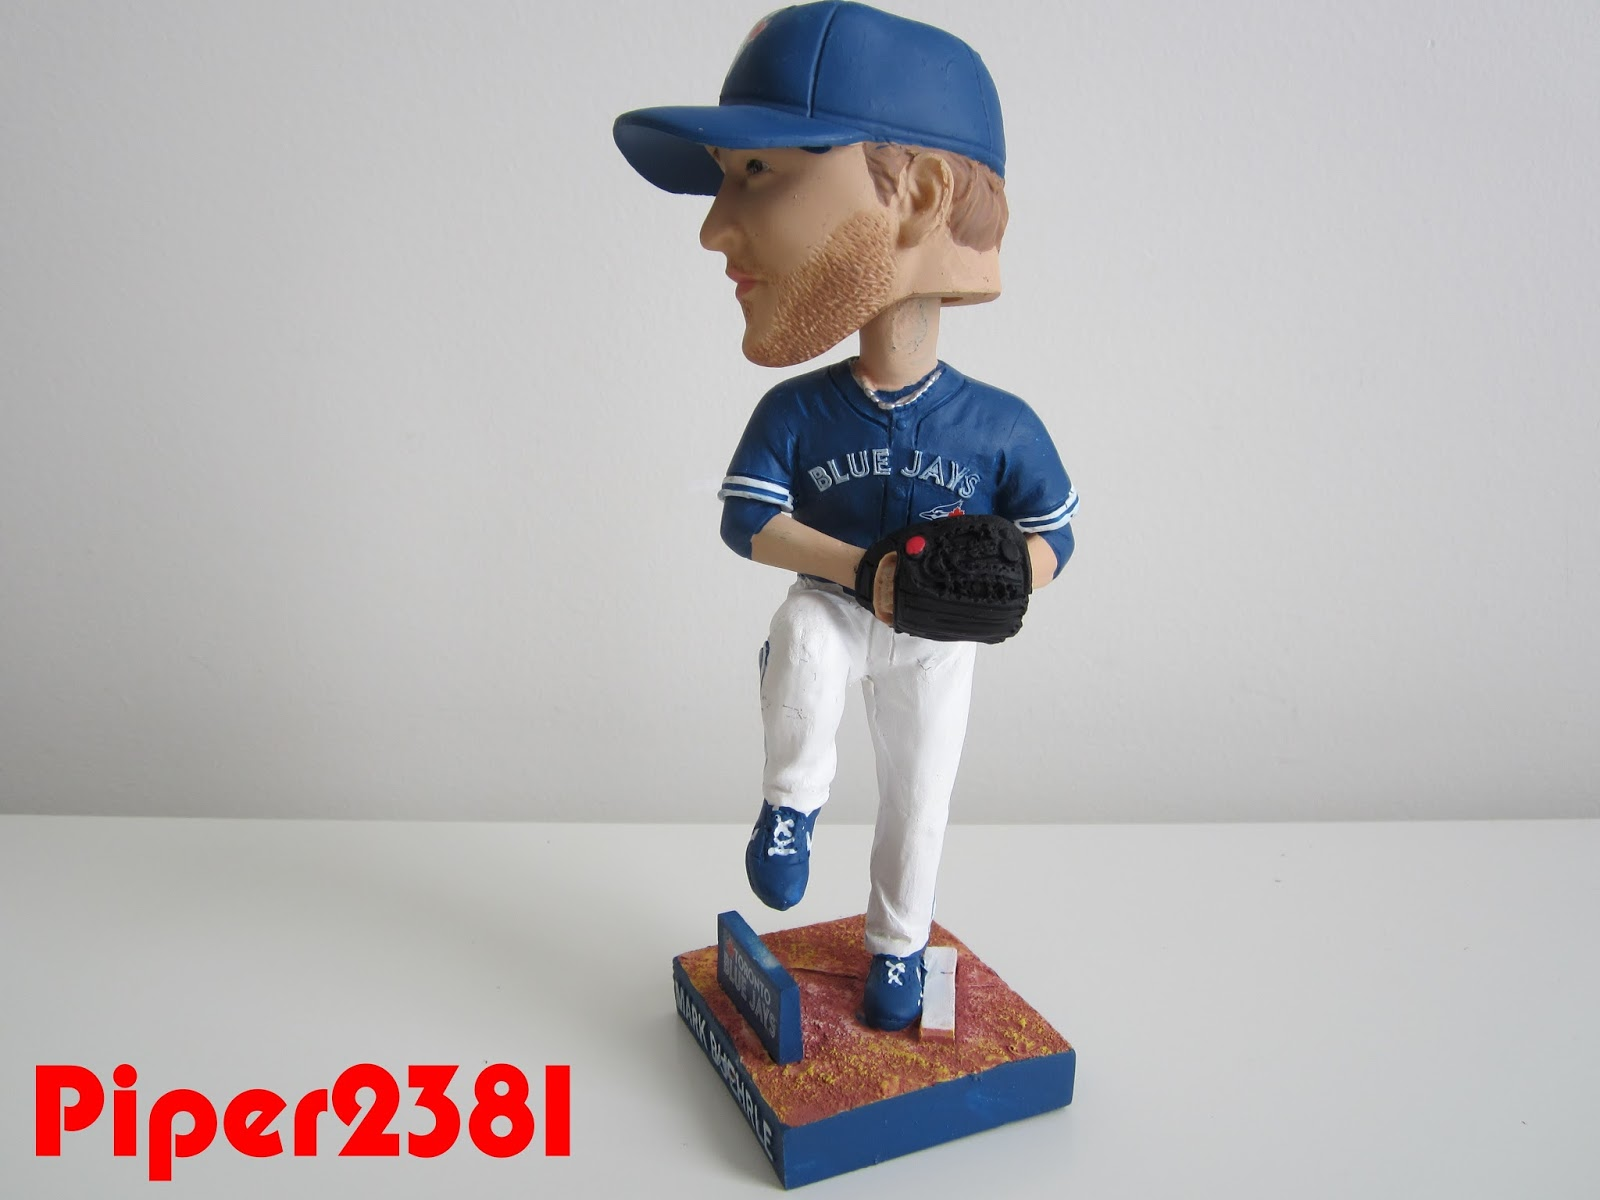 7f8cb709d33 The quality of bobbleheads from BDA Inc. keeps getting better and better as  Buehrle is displayed winding up for a pitch. The details included on the  figure ...